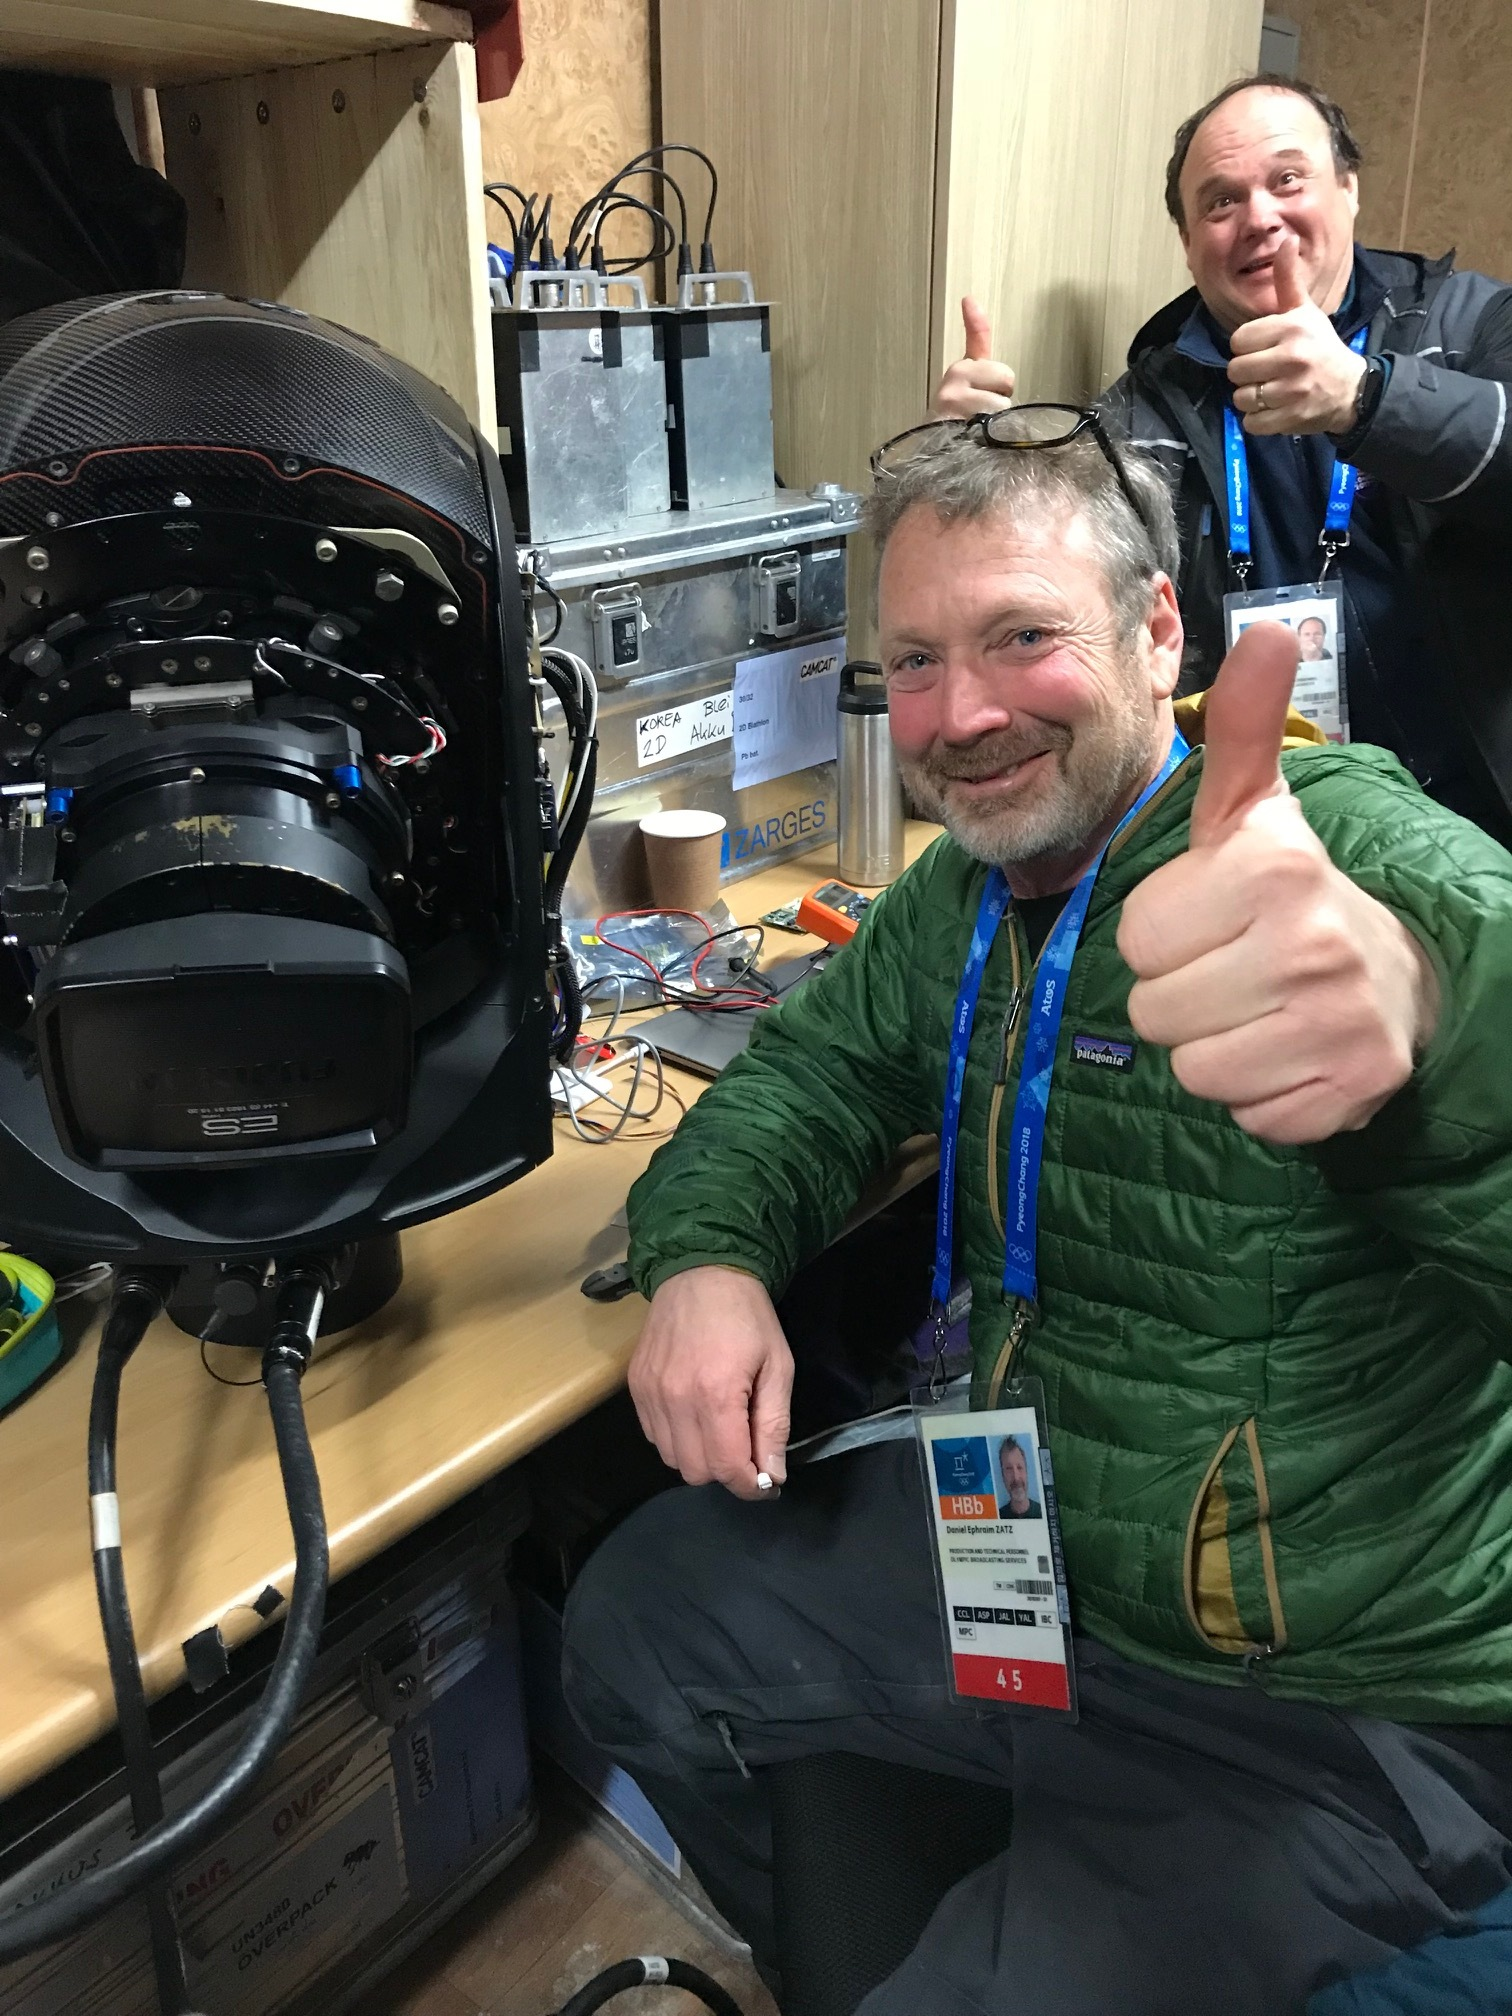 Bringing gimbals back to life for Camcat at the 2018 Winter Olympics.